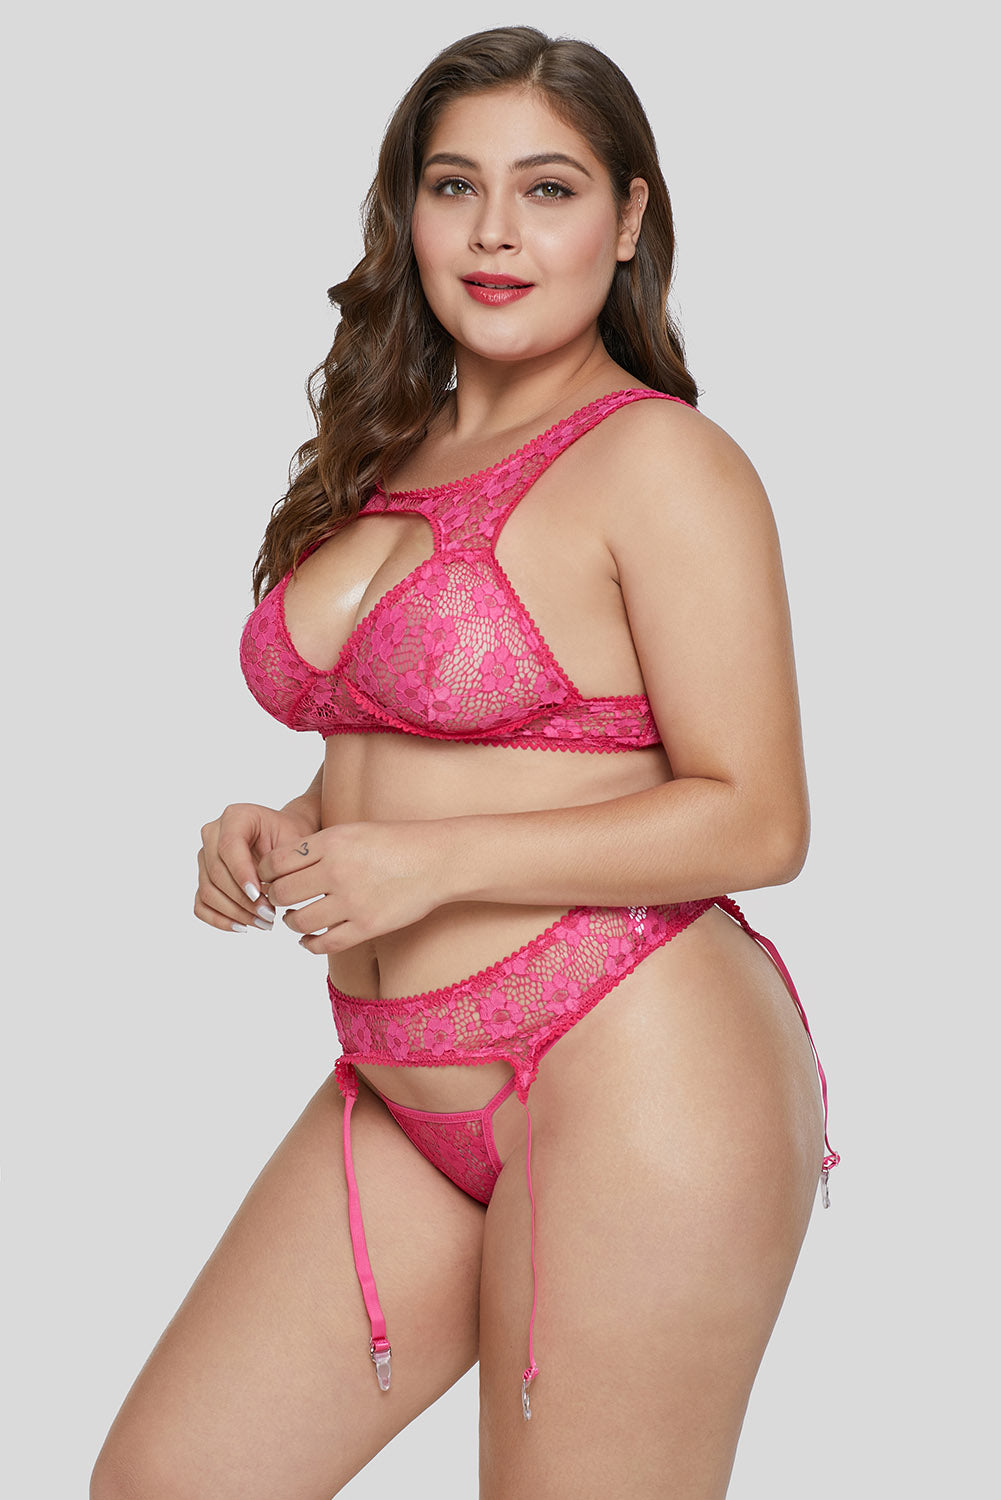 Rose Hollow-out Bust Plus Size Bralette Set